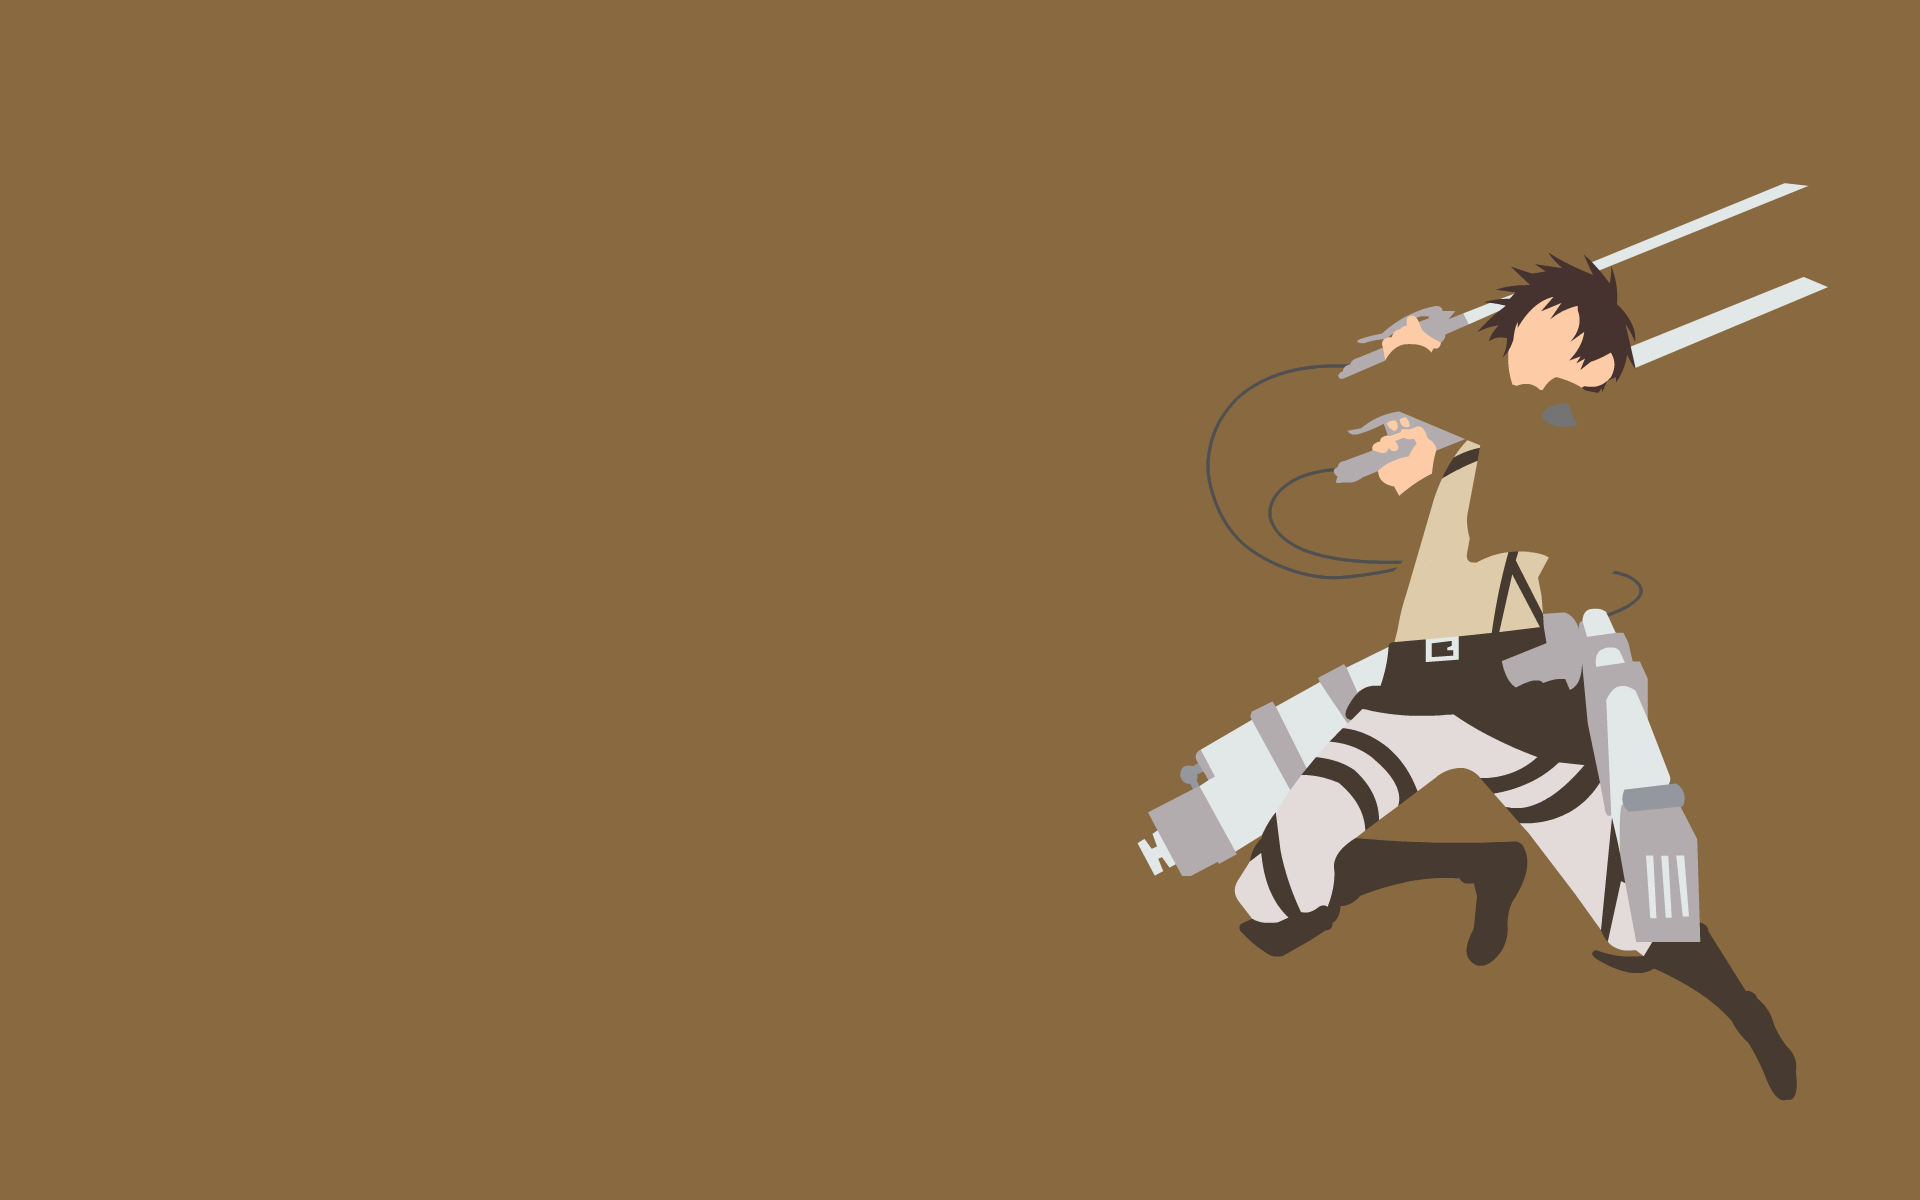 Minimalistic Attack On Titan Wallpaper 4k Gambarku